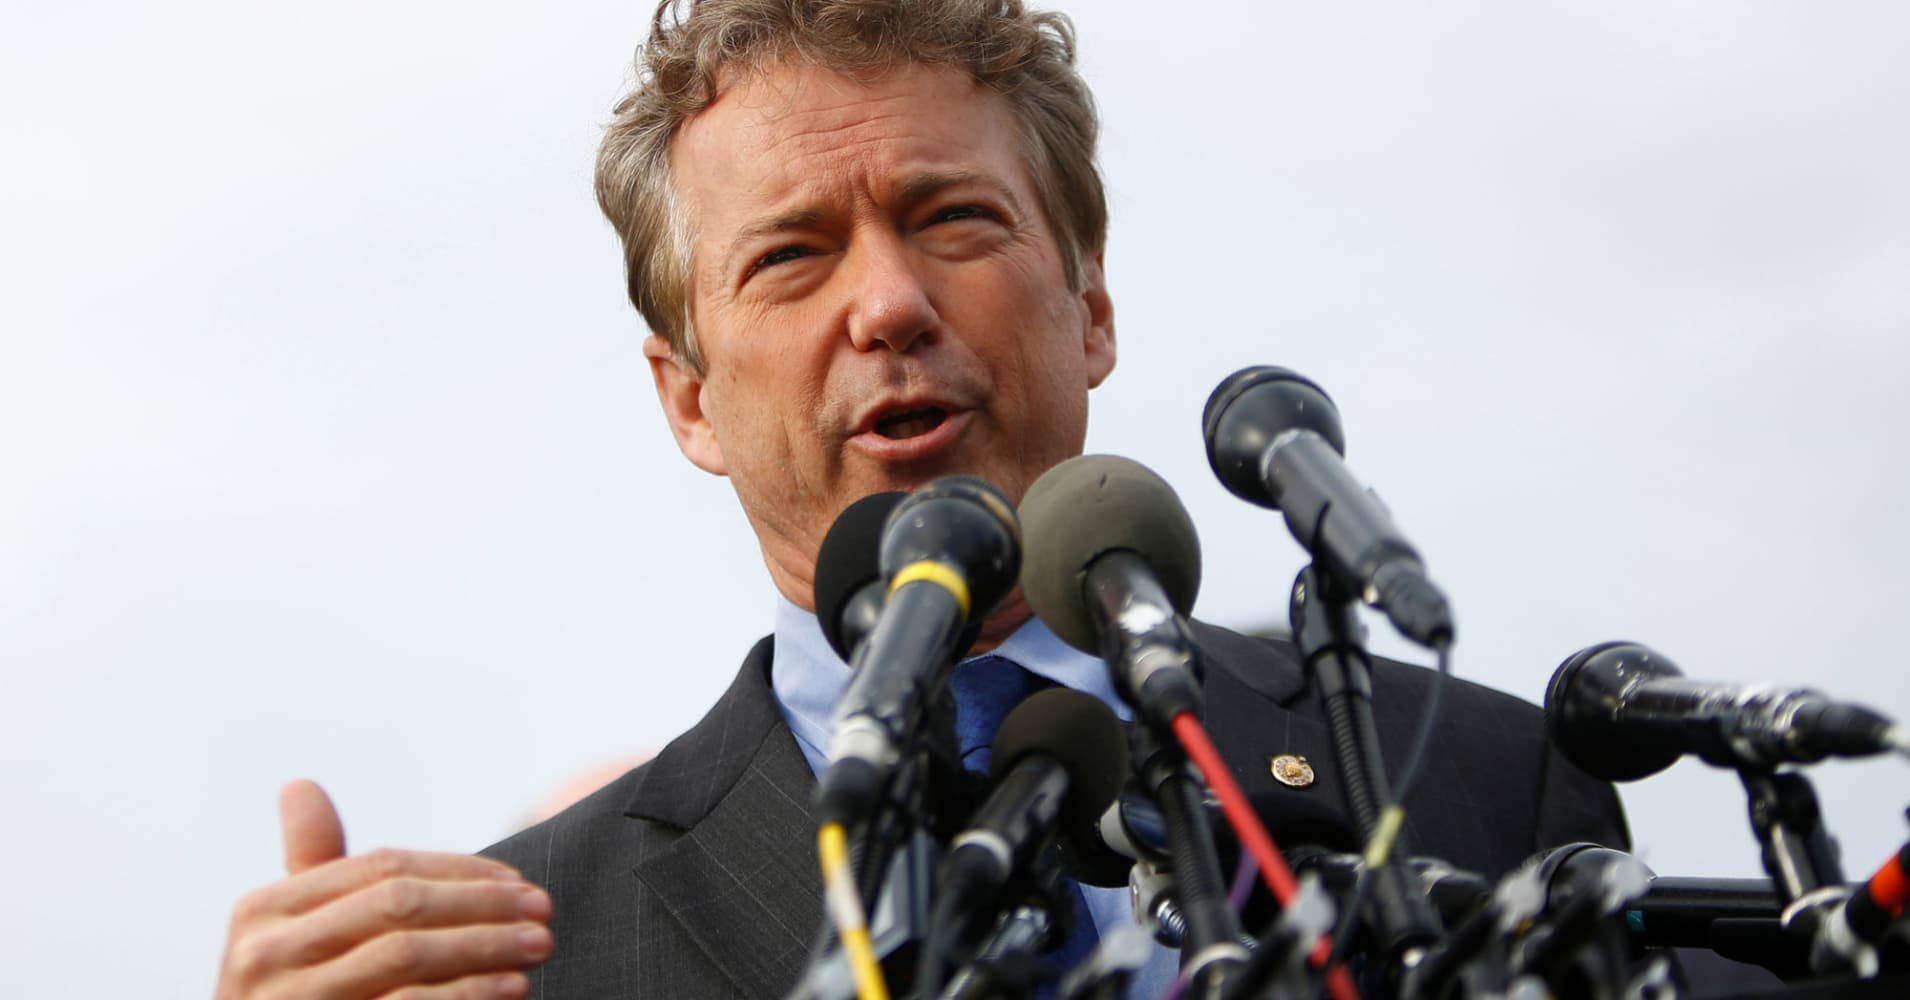 Sen. Rand Paul is expected to force vote on key portion of $110 billion Saudi arms deal